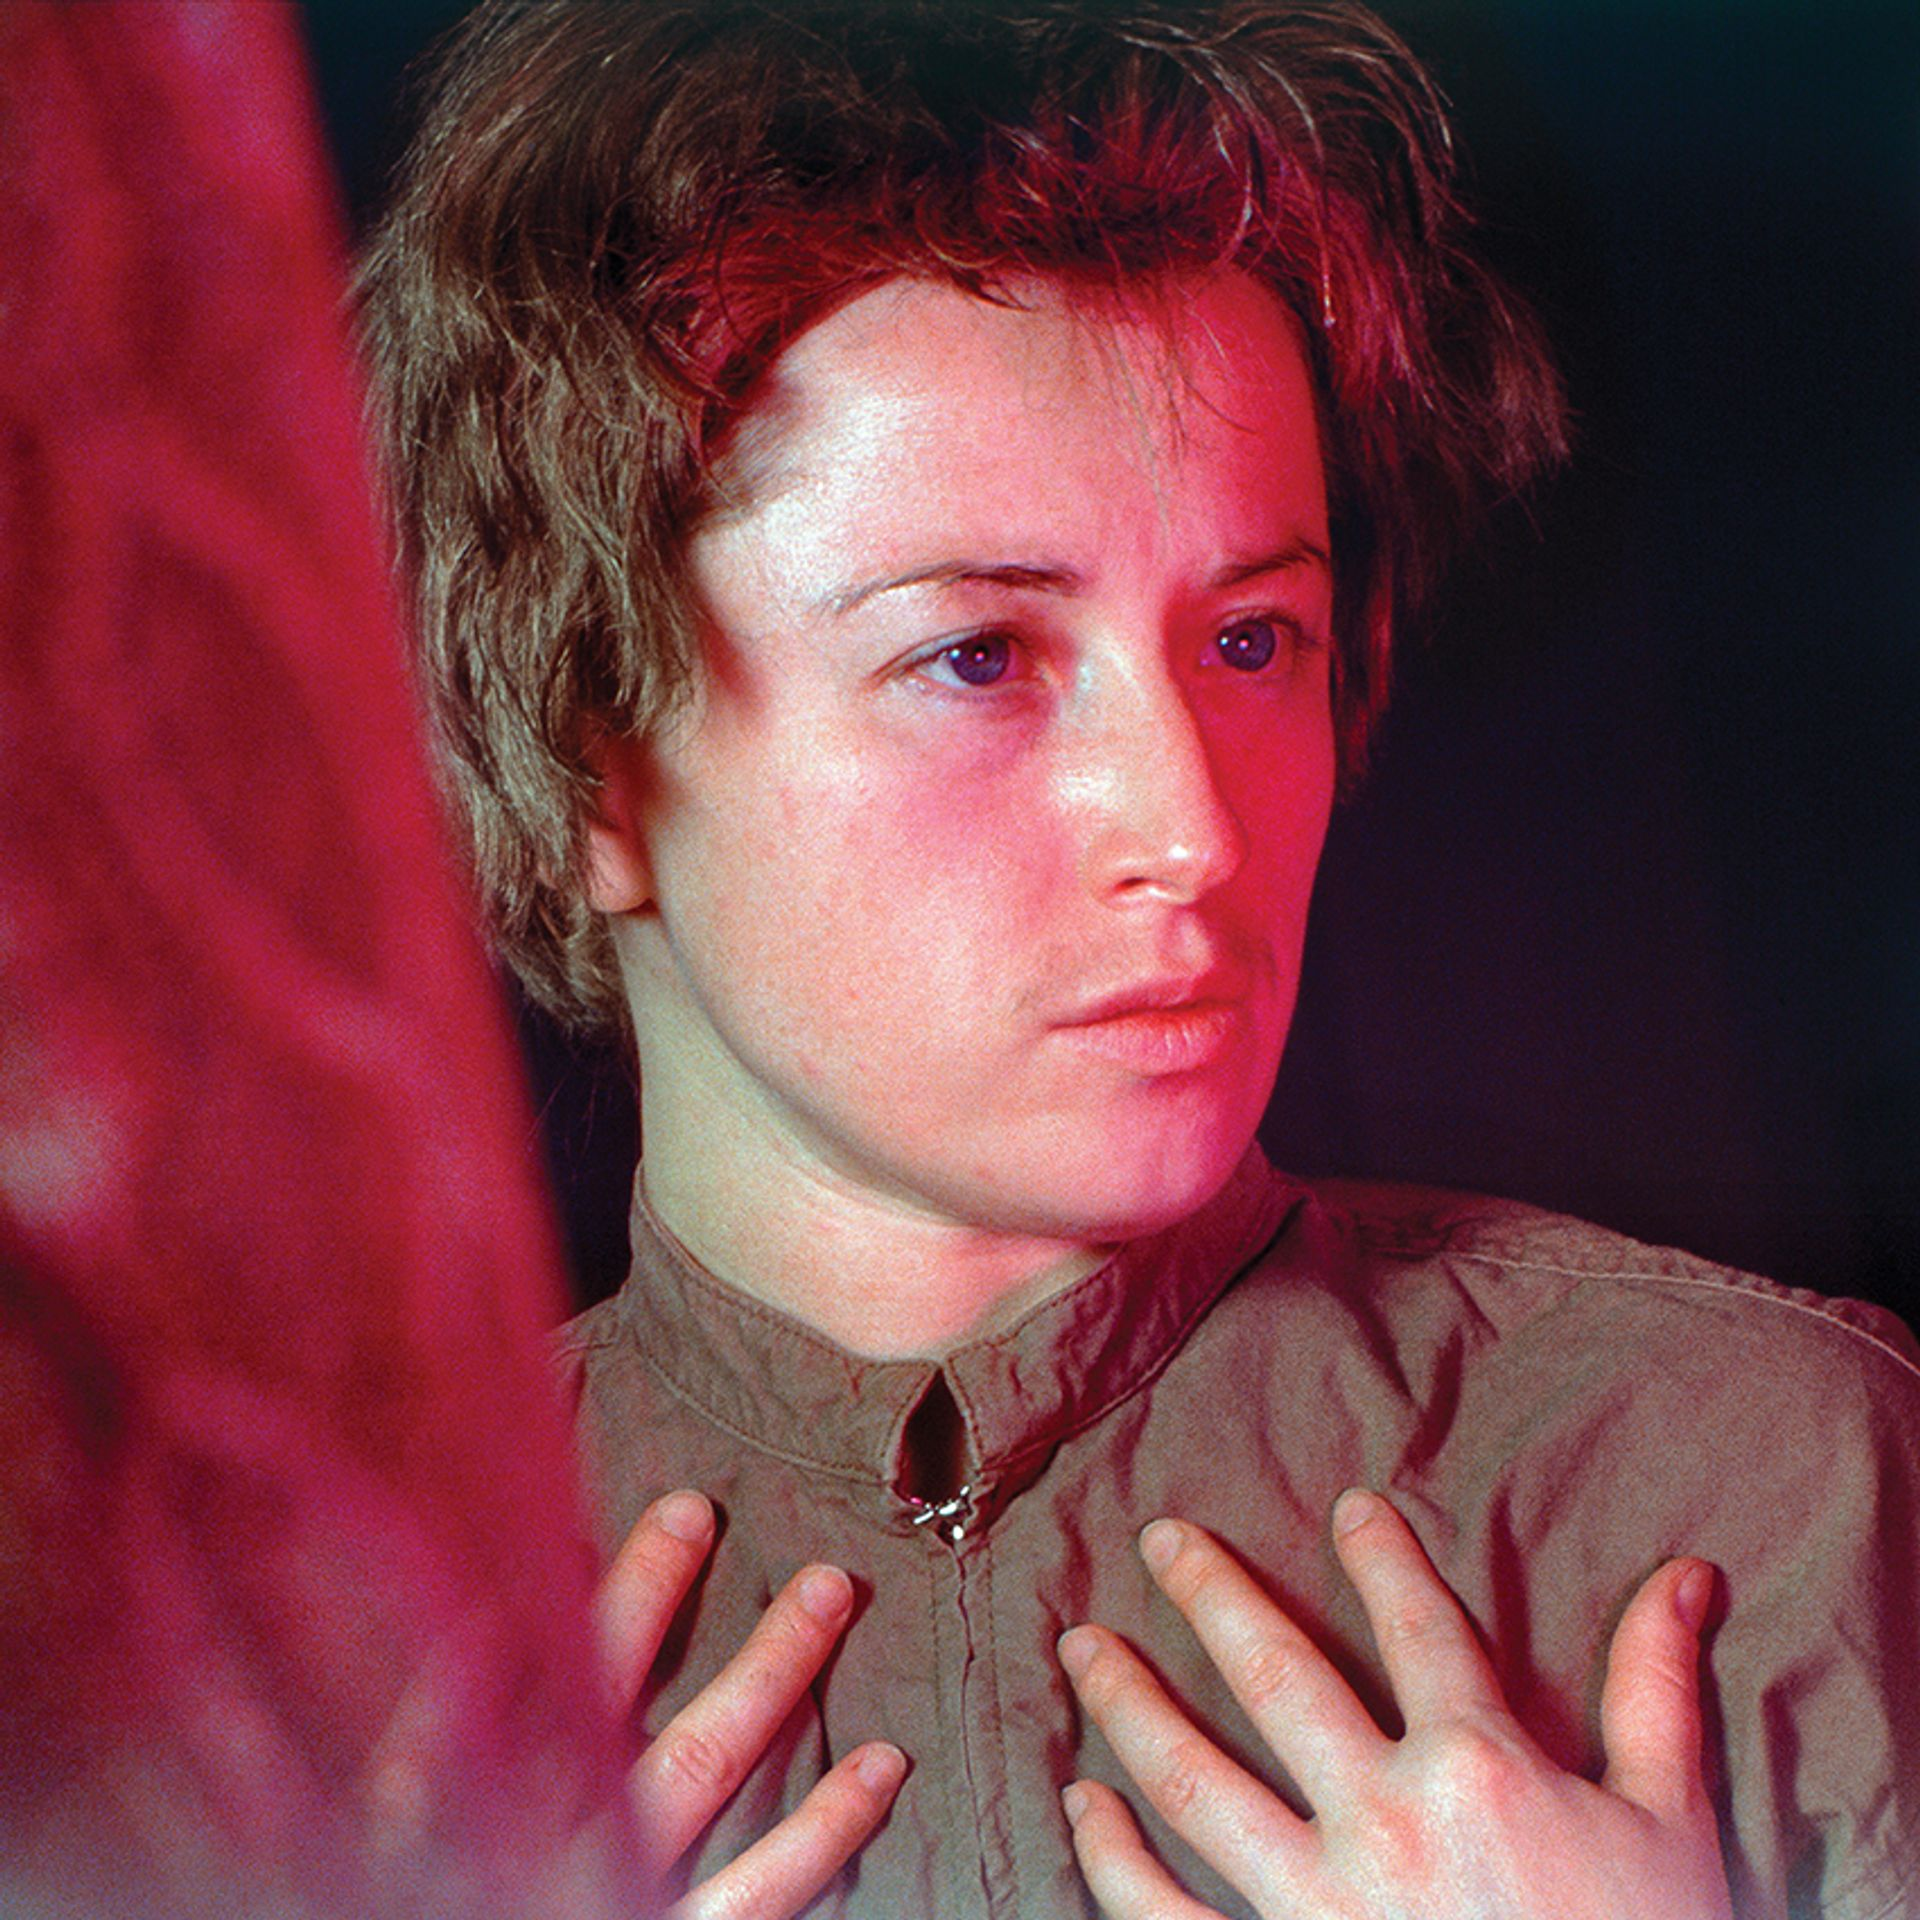 Untitled #109 (1982) by Cindy Sherman, one of nine women artists in the Close-Up exhibition at the Beyeler Foundation © 2021 Cindy Sherman